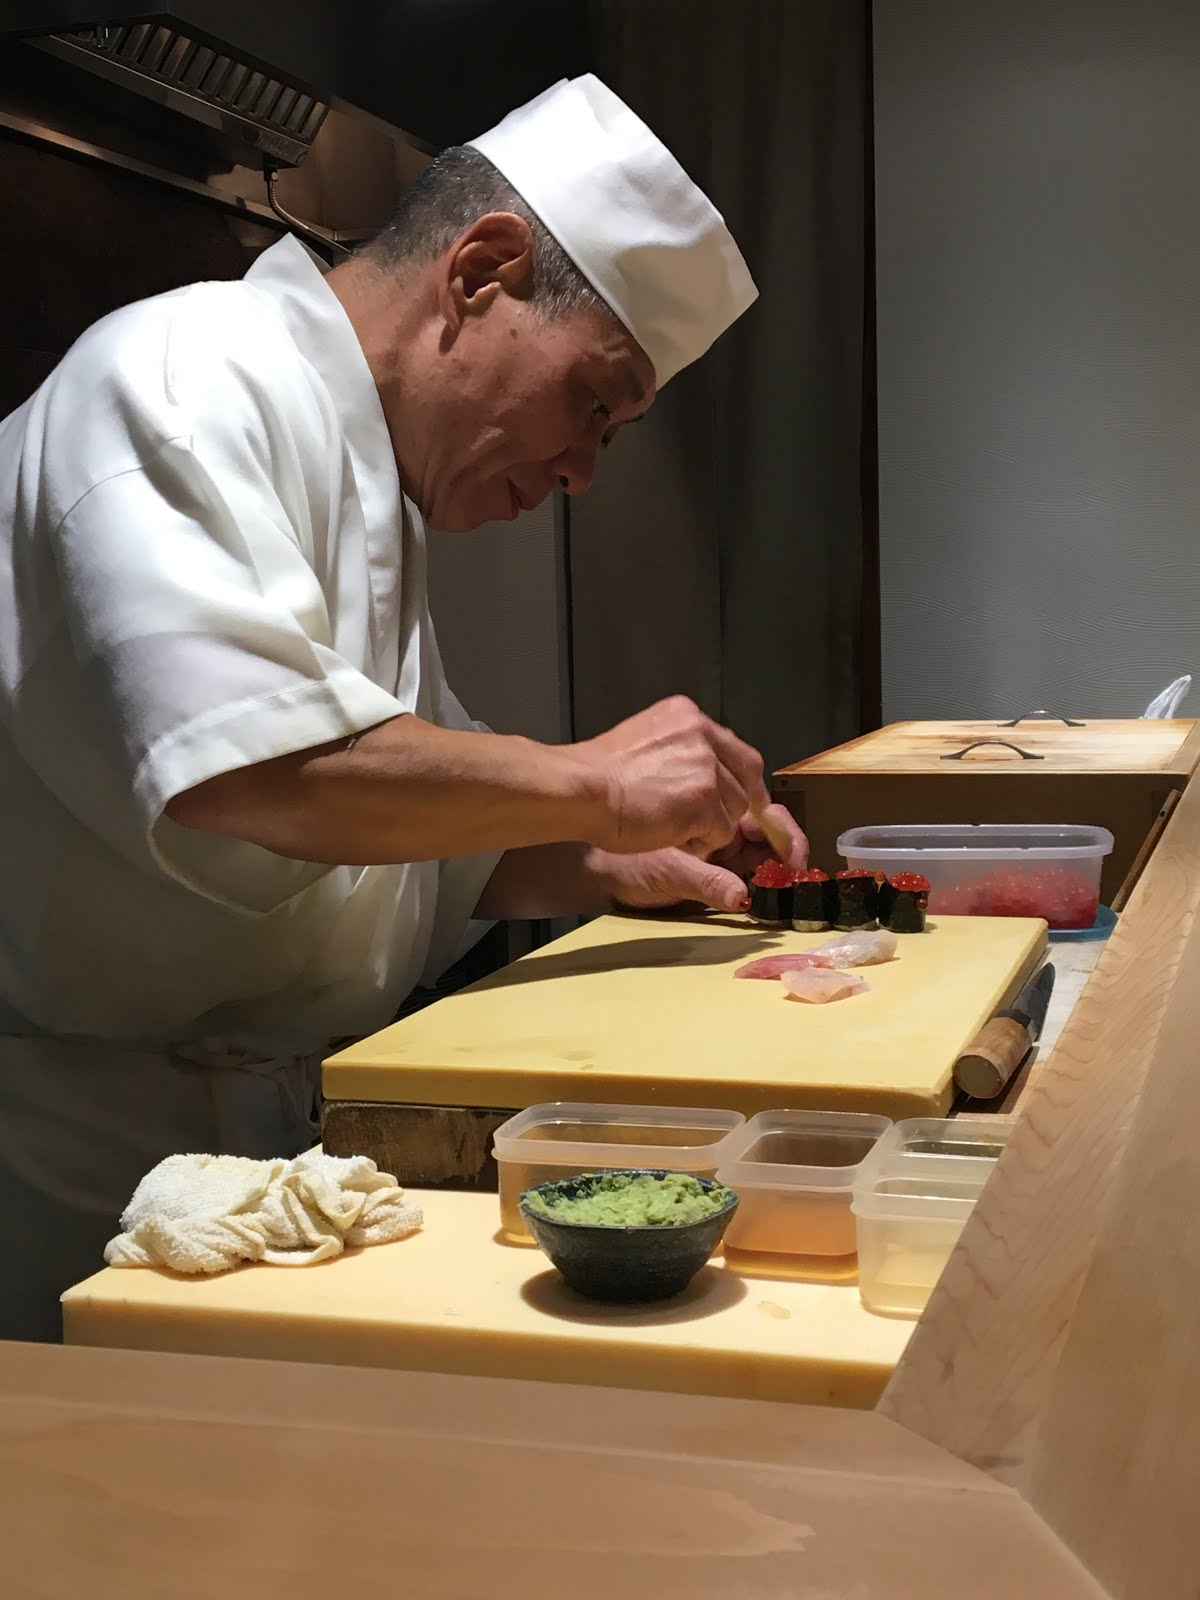 Sushi chef yasuda in action making sushi